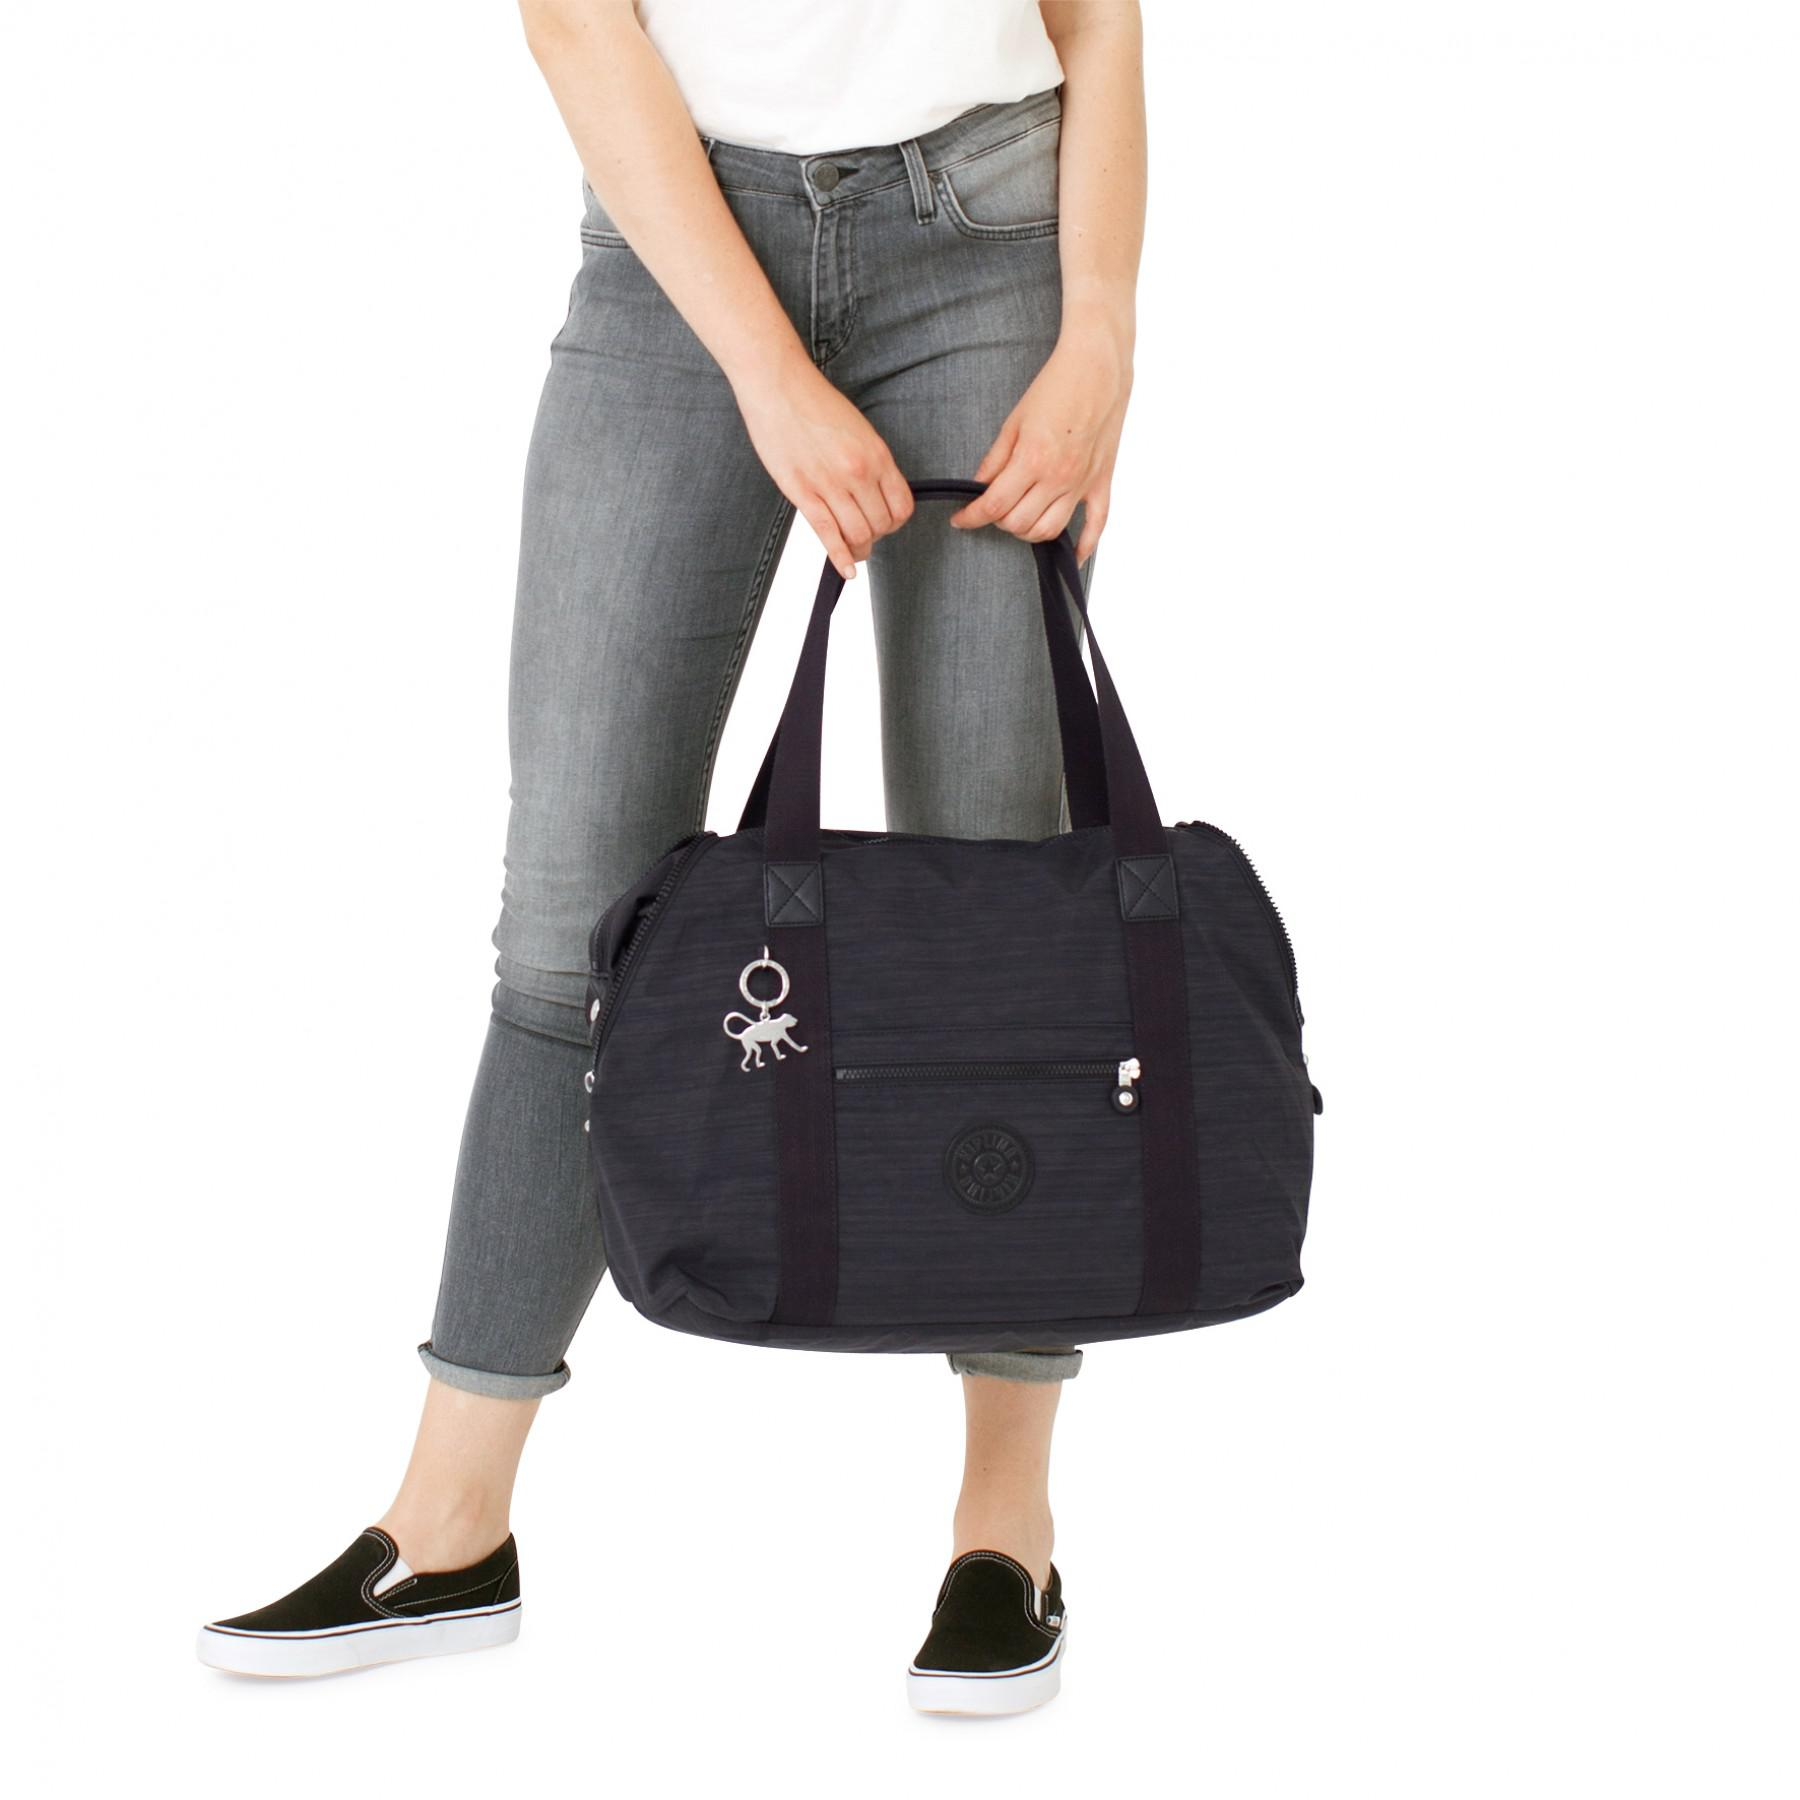 Buy Kipling Art Essential Newest Sale Online 4eR4910L